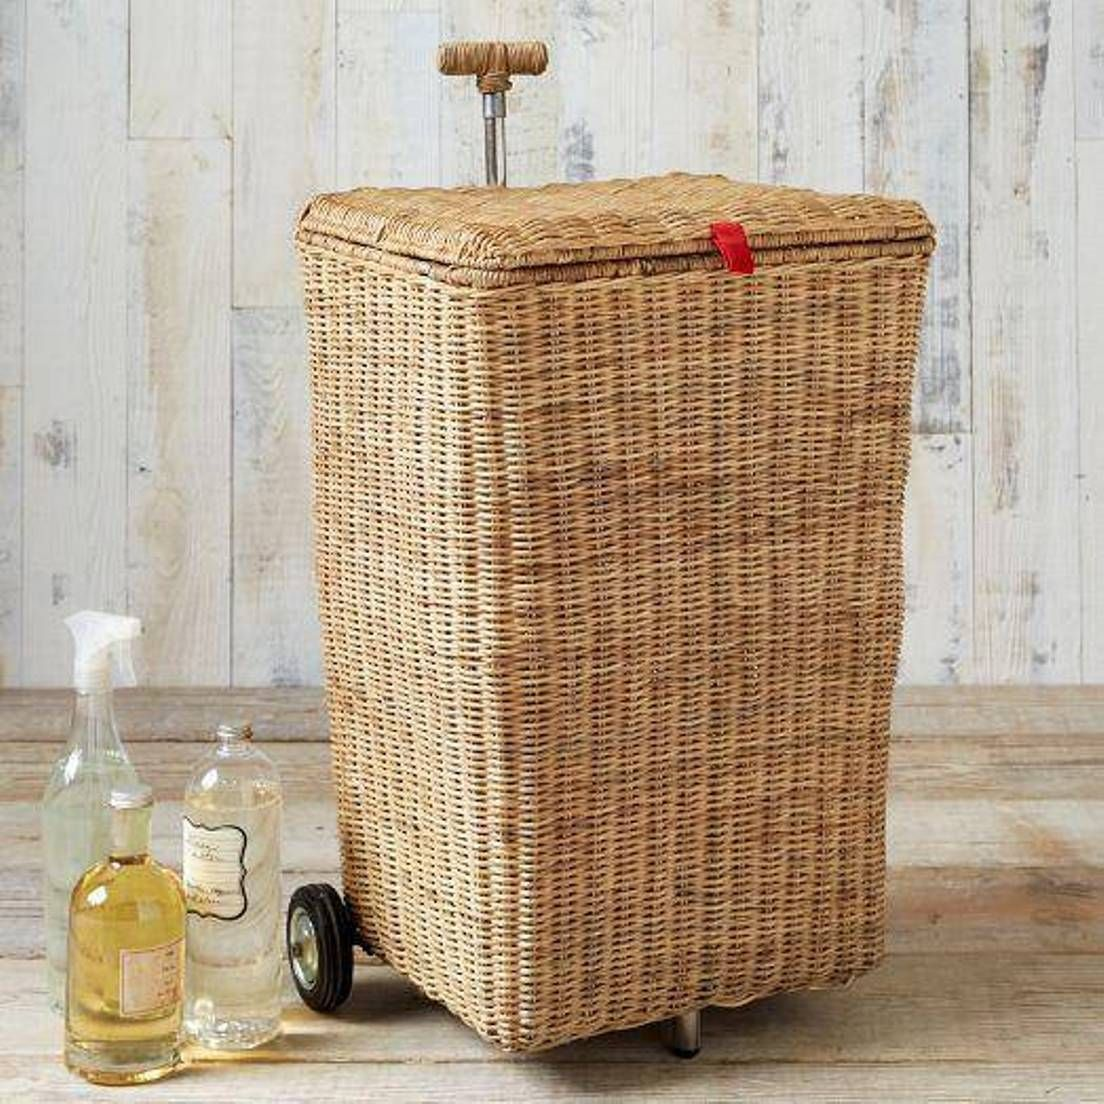 Hamper With Wheels For Easy Moving Linen Laundry Basket On